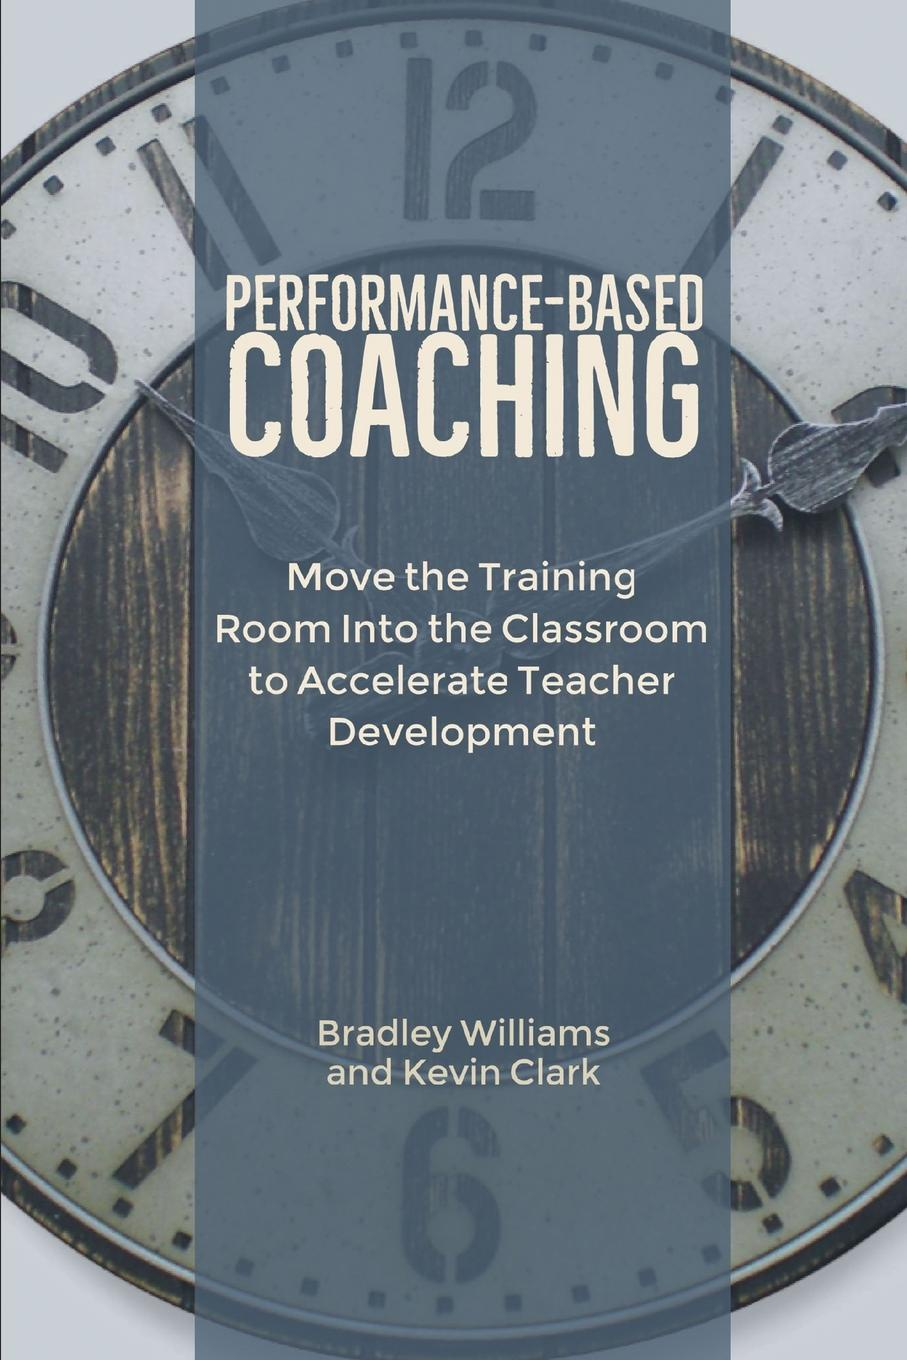 Bradley M Williams, Kevin J Clark Performance-Based Coaching. Move the Training Room Into the Classroom to Accelerate Teacher Development innovative reflections of teacher training programmes